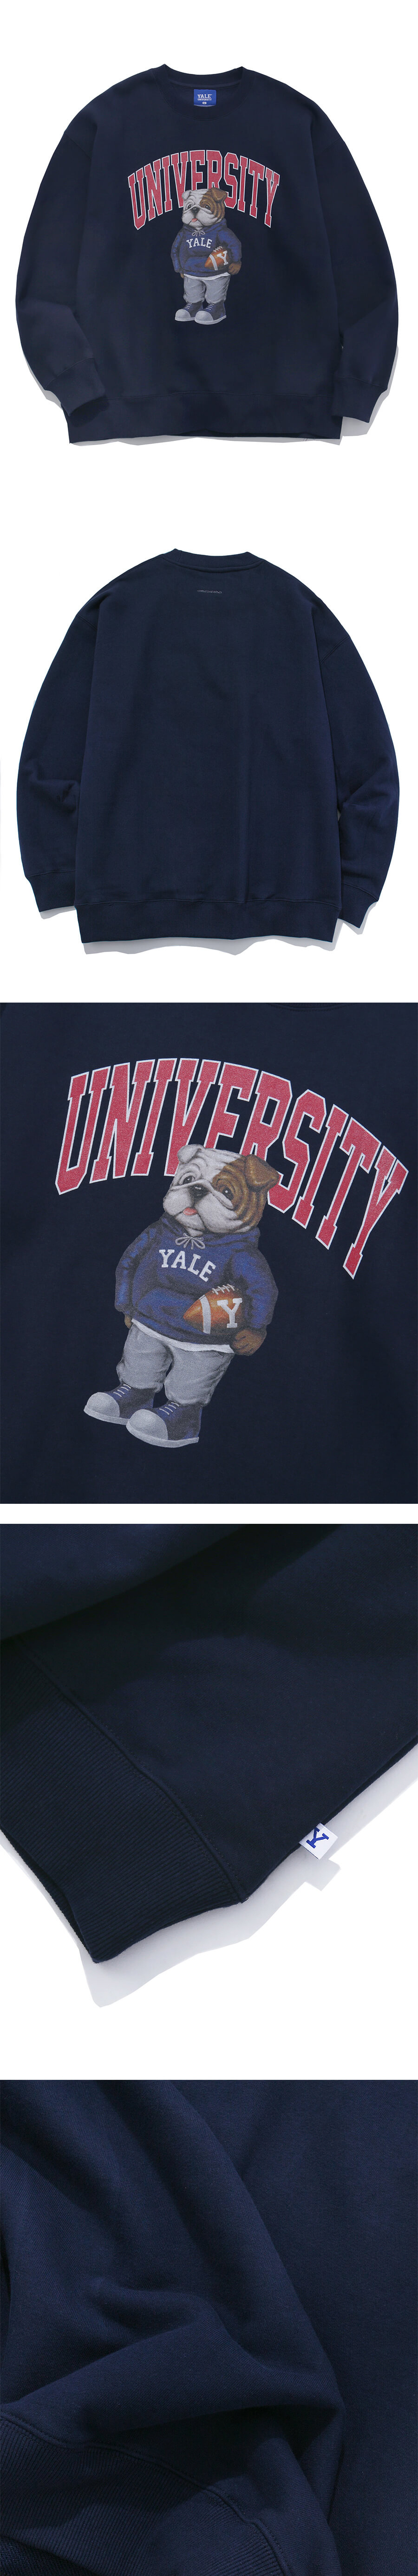 예일(YALE) (BY P.E.DEPT) UNIVERSITY HANDSOME DAN CREWNECK NAVY